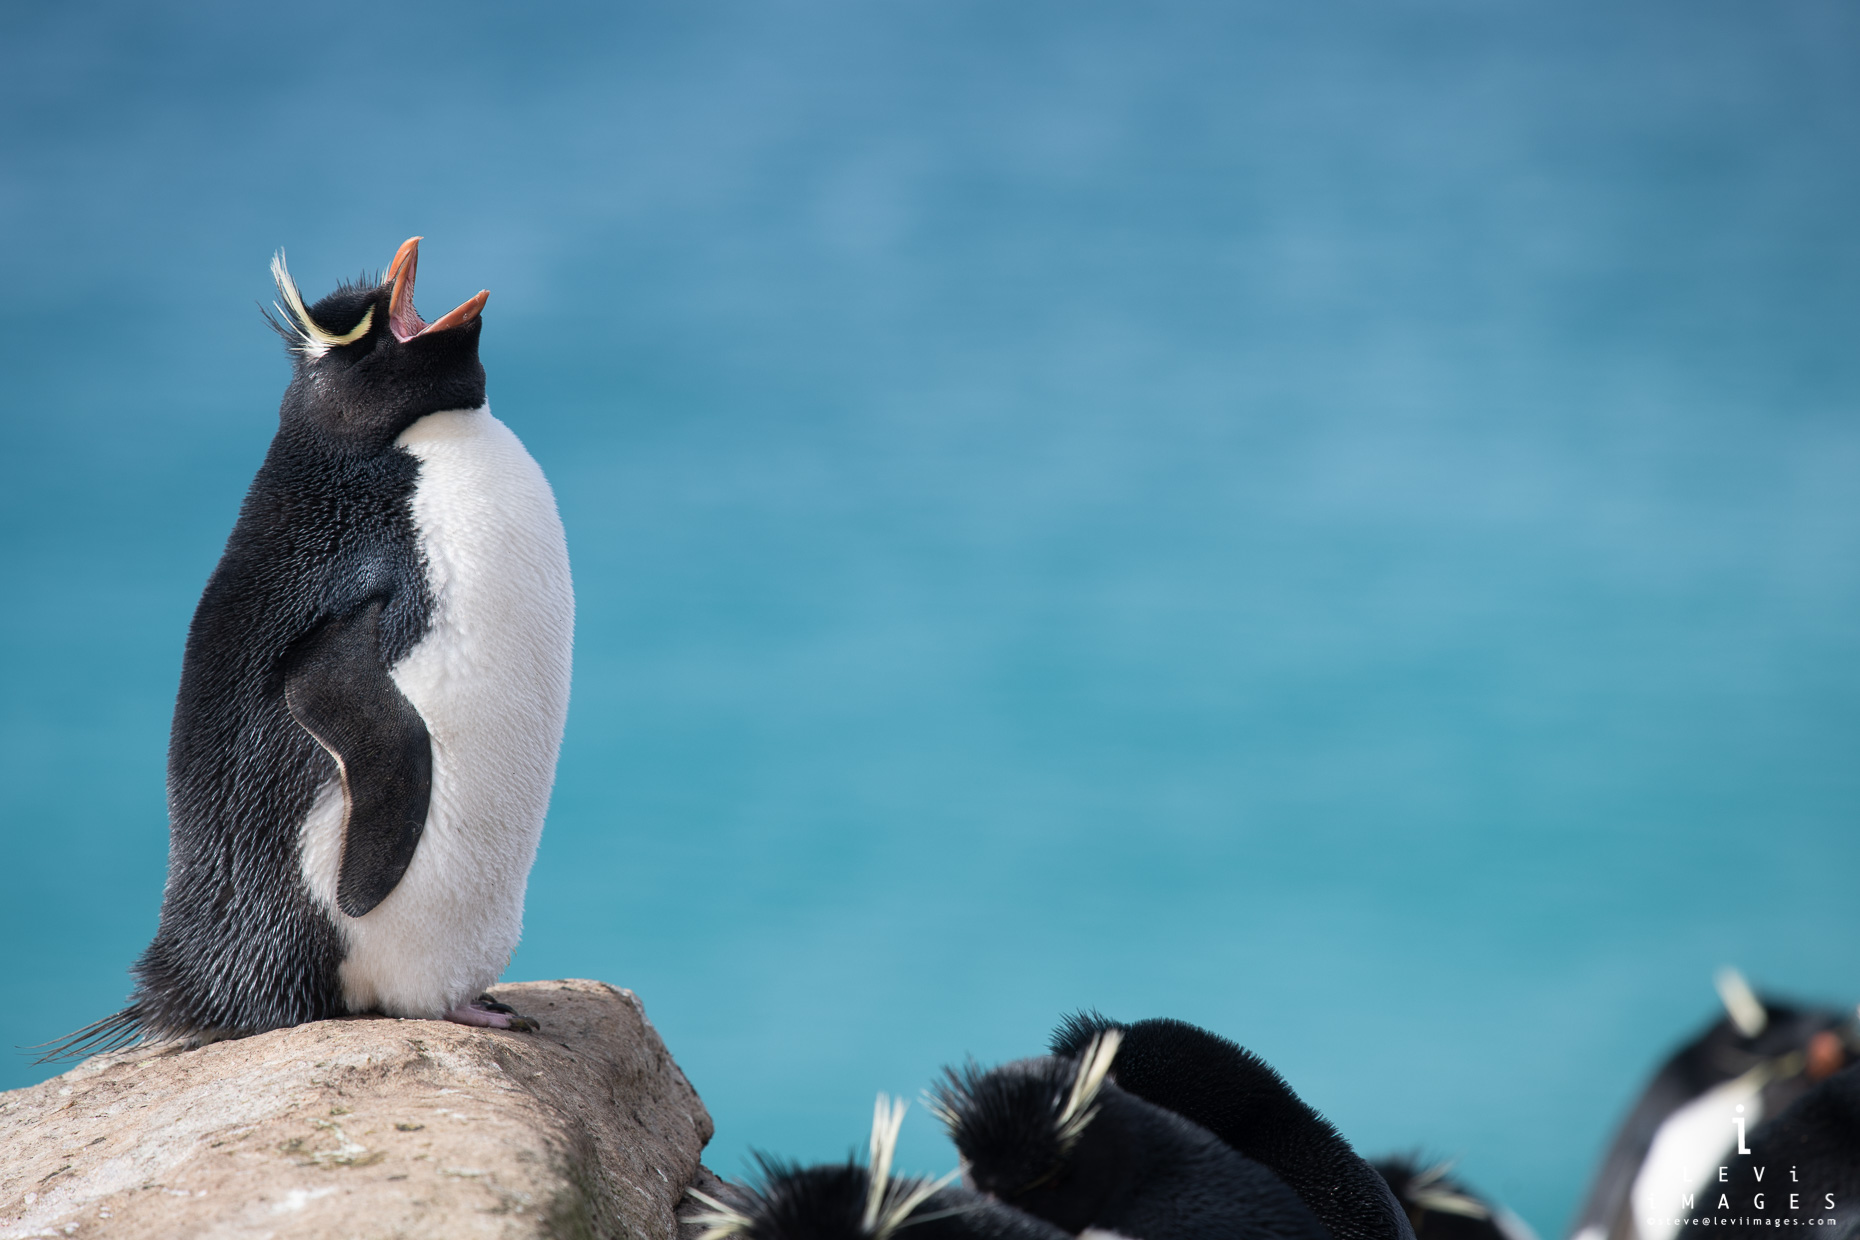 Southern Rockhopper penguin (Eudyptes chrysocome) perched on rock calls out in search of mate. Falkland Islands